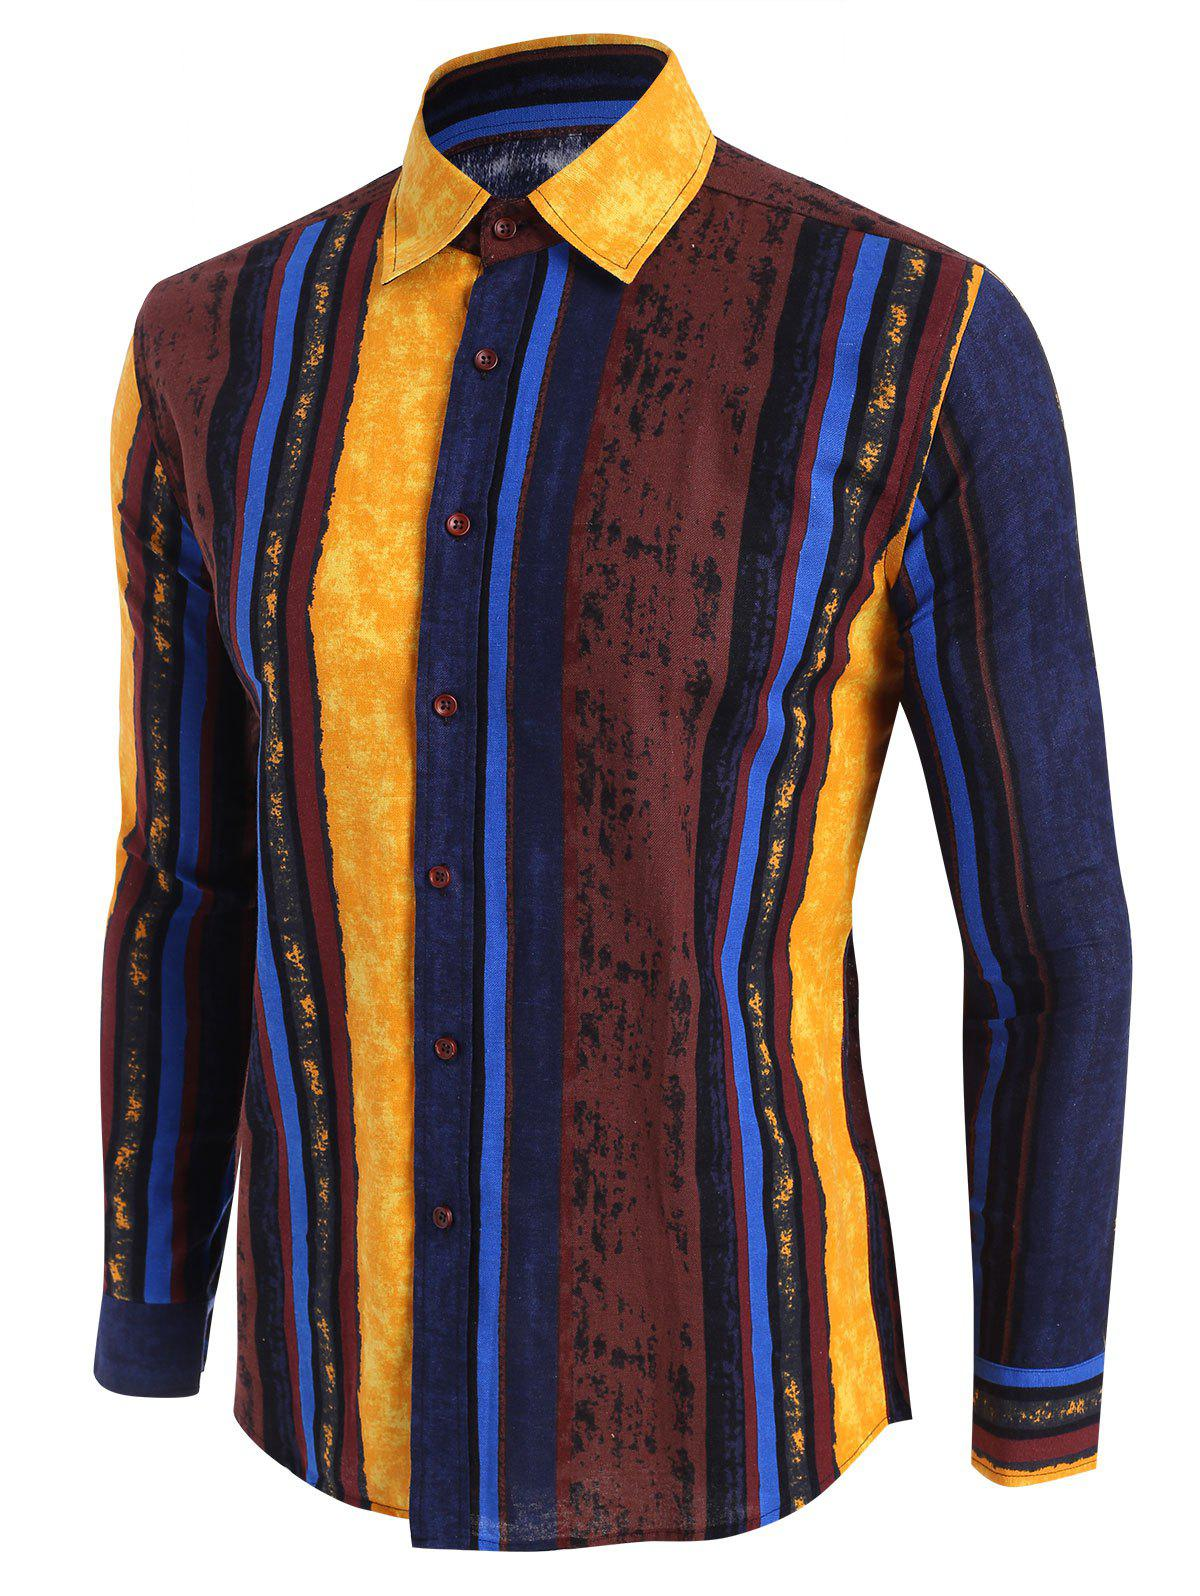 Buy Vertical Striped Ethnic Button Up Shirt